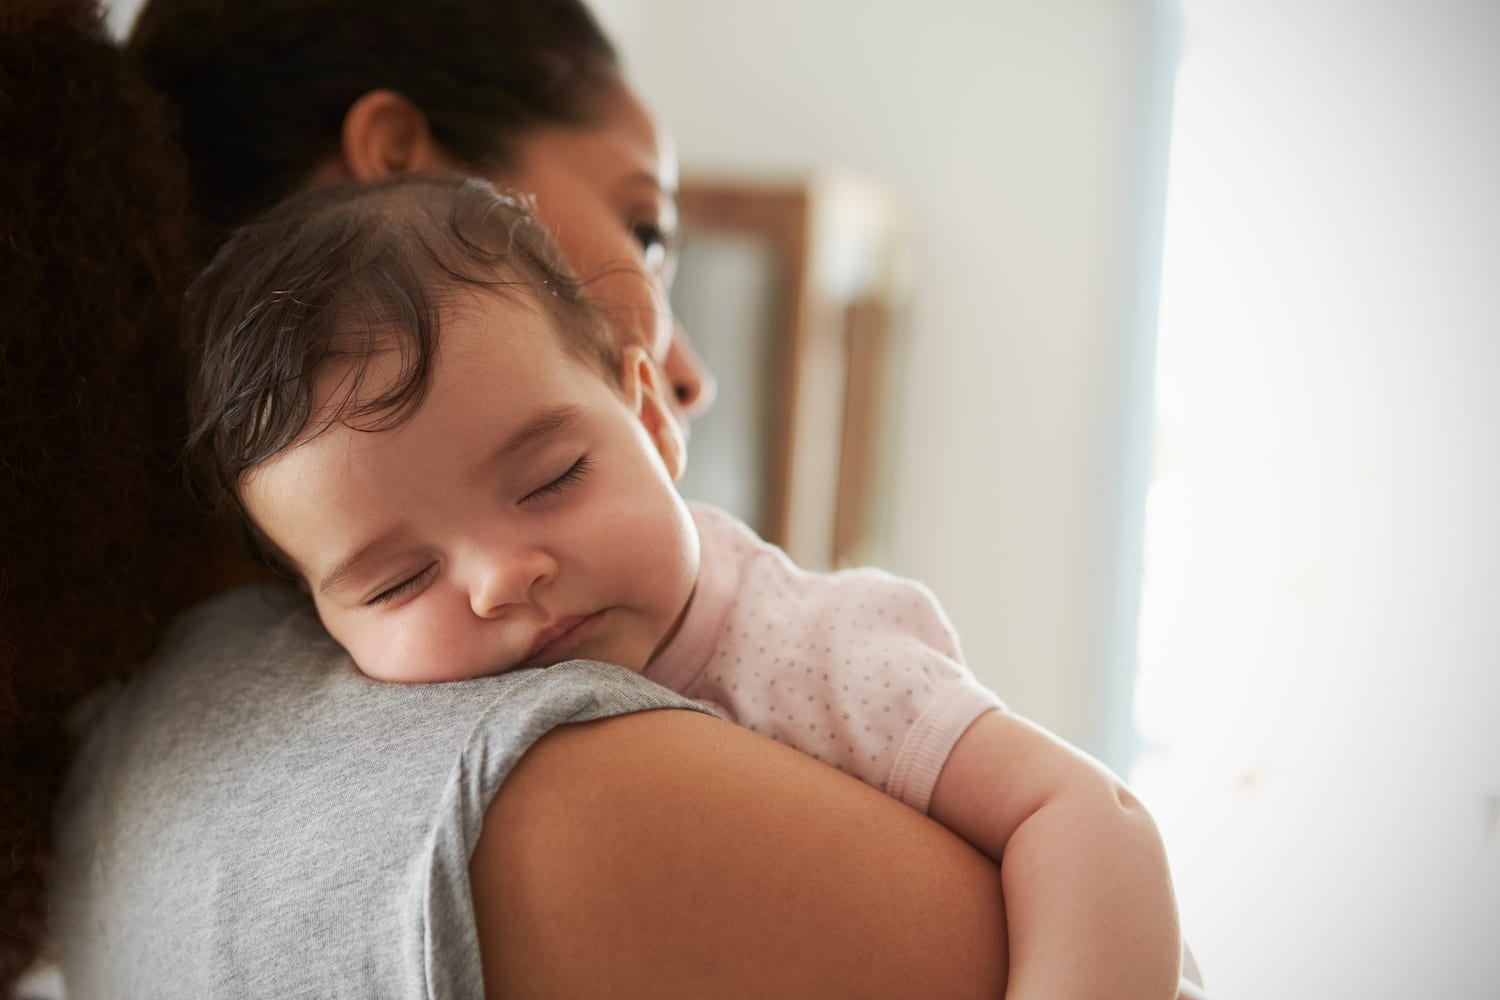 woman holding sleeping baby